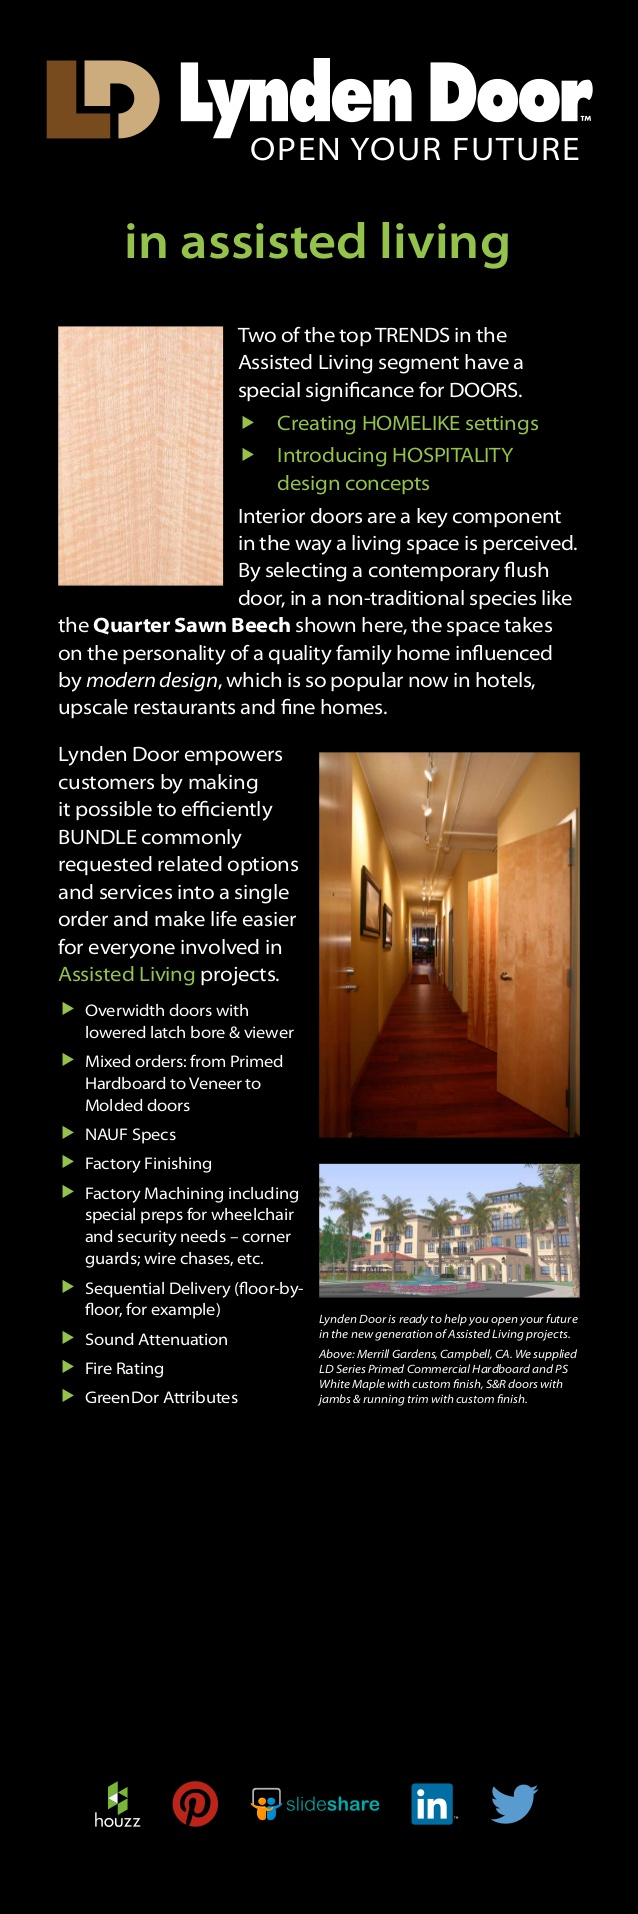 OPEN YOUR FUTURE in ASSISTED LIVING with Lynden Door.